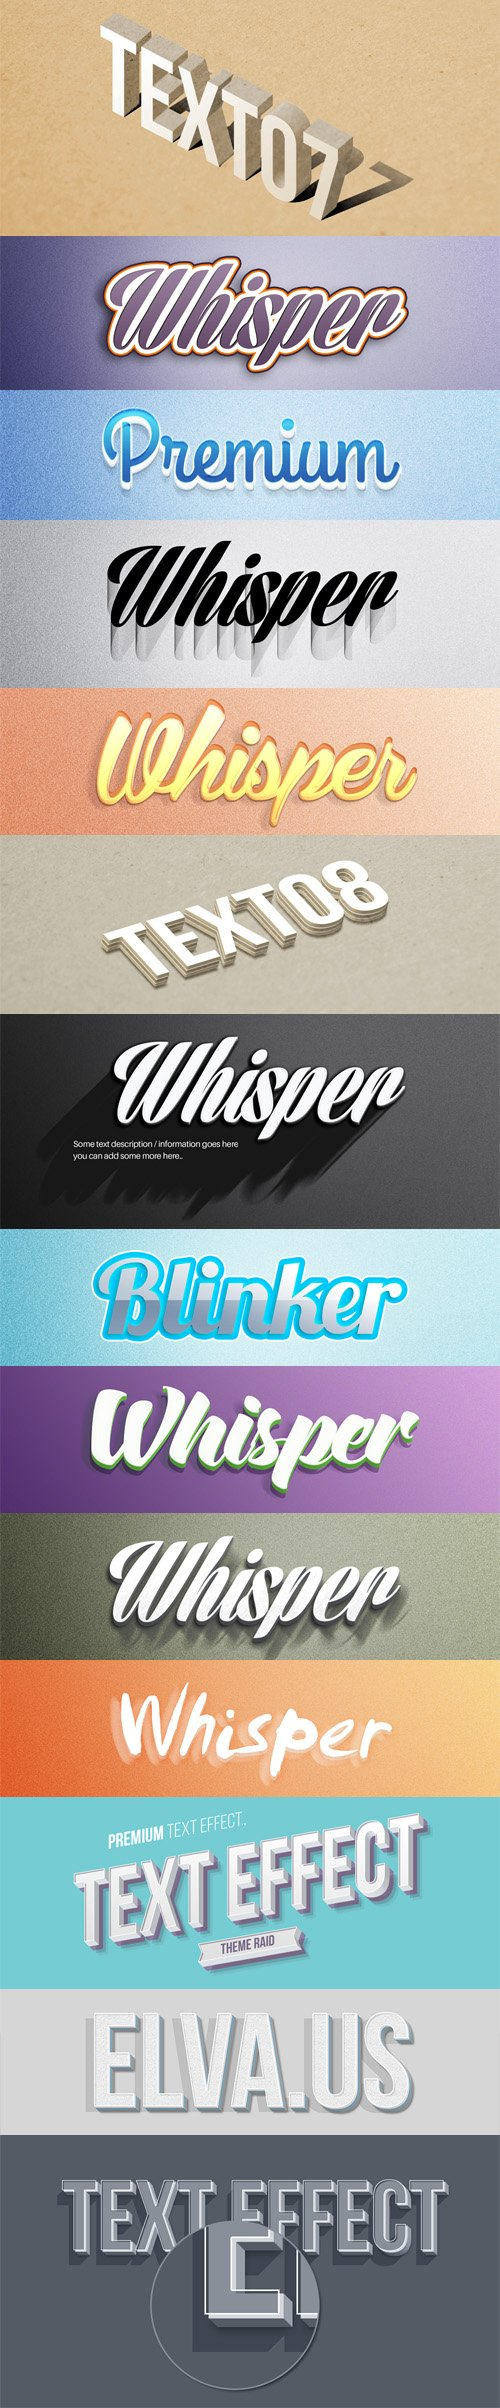 3D Text Effects PSD With Shadows